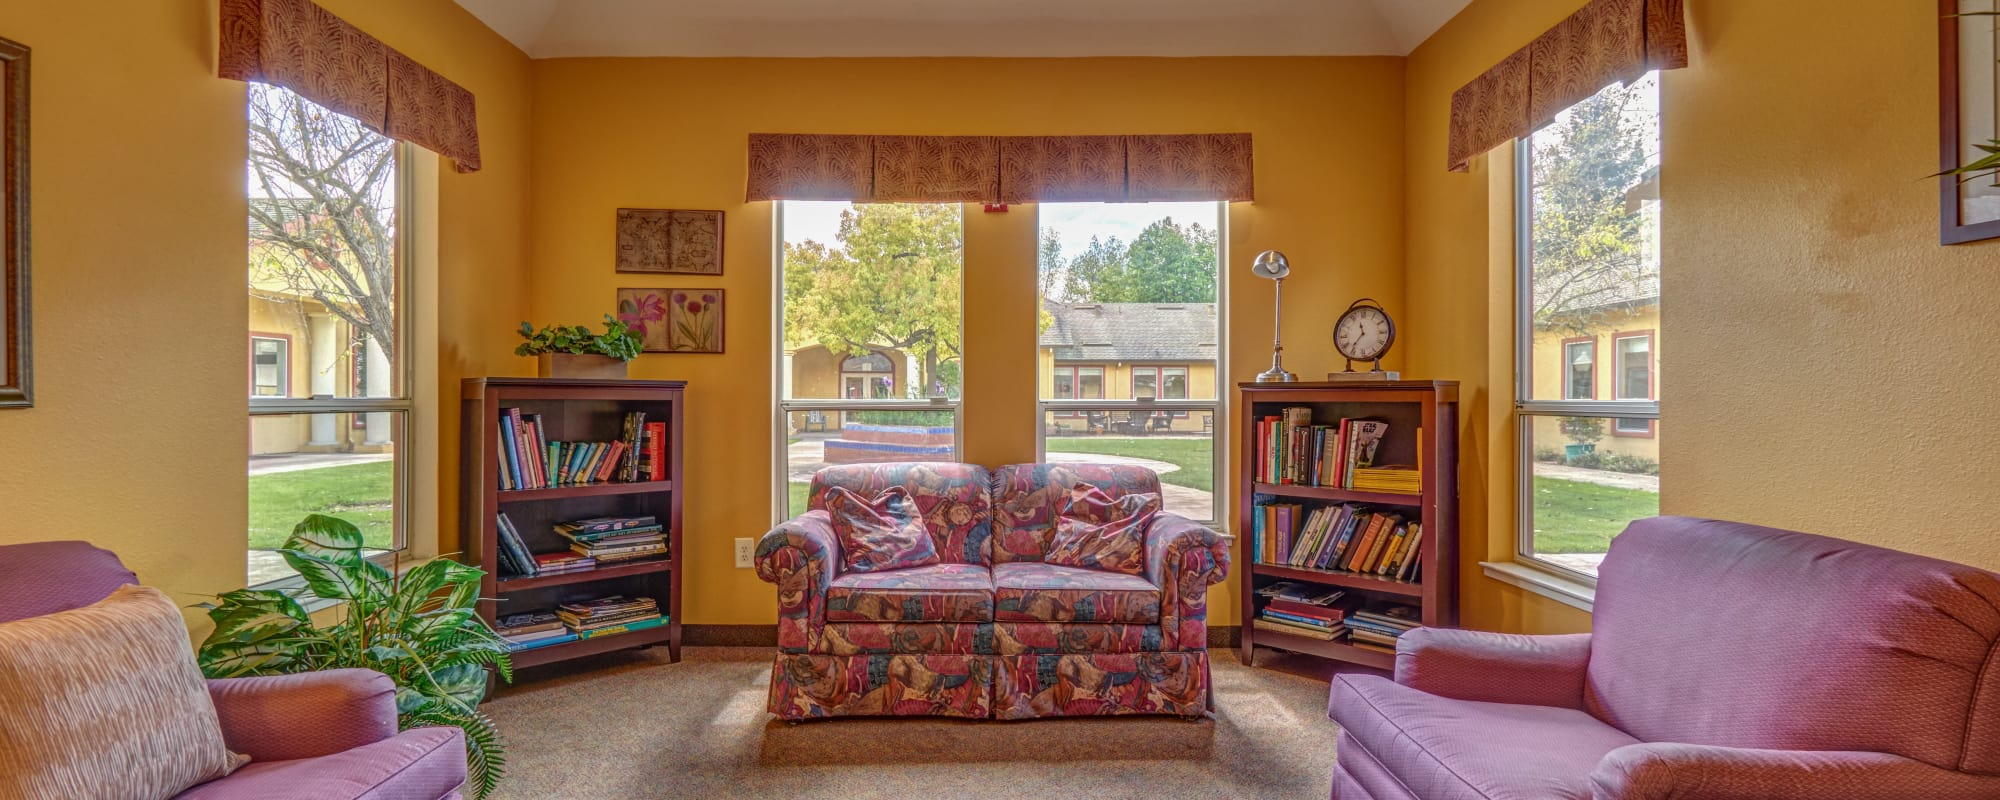 Living space at MuirWoods Memory Care in Petaluma, California